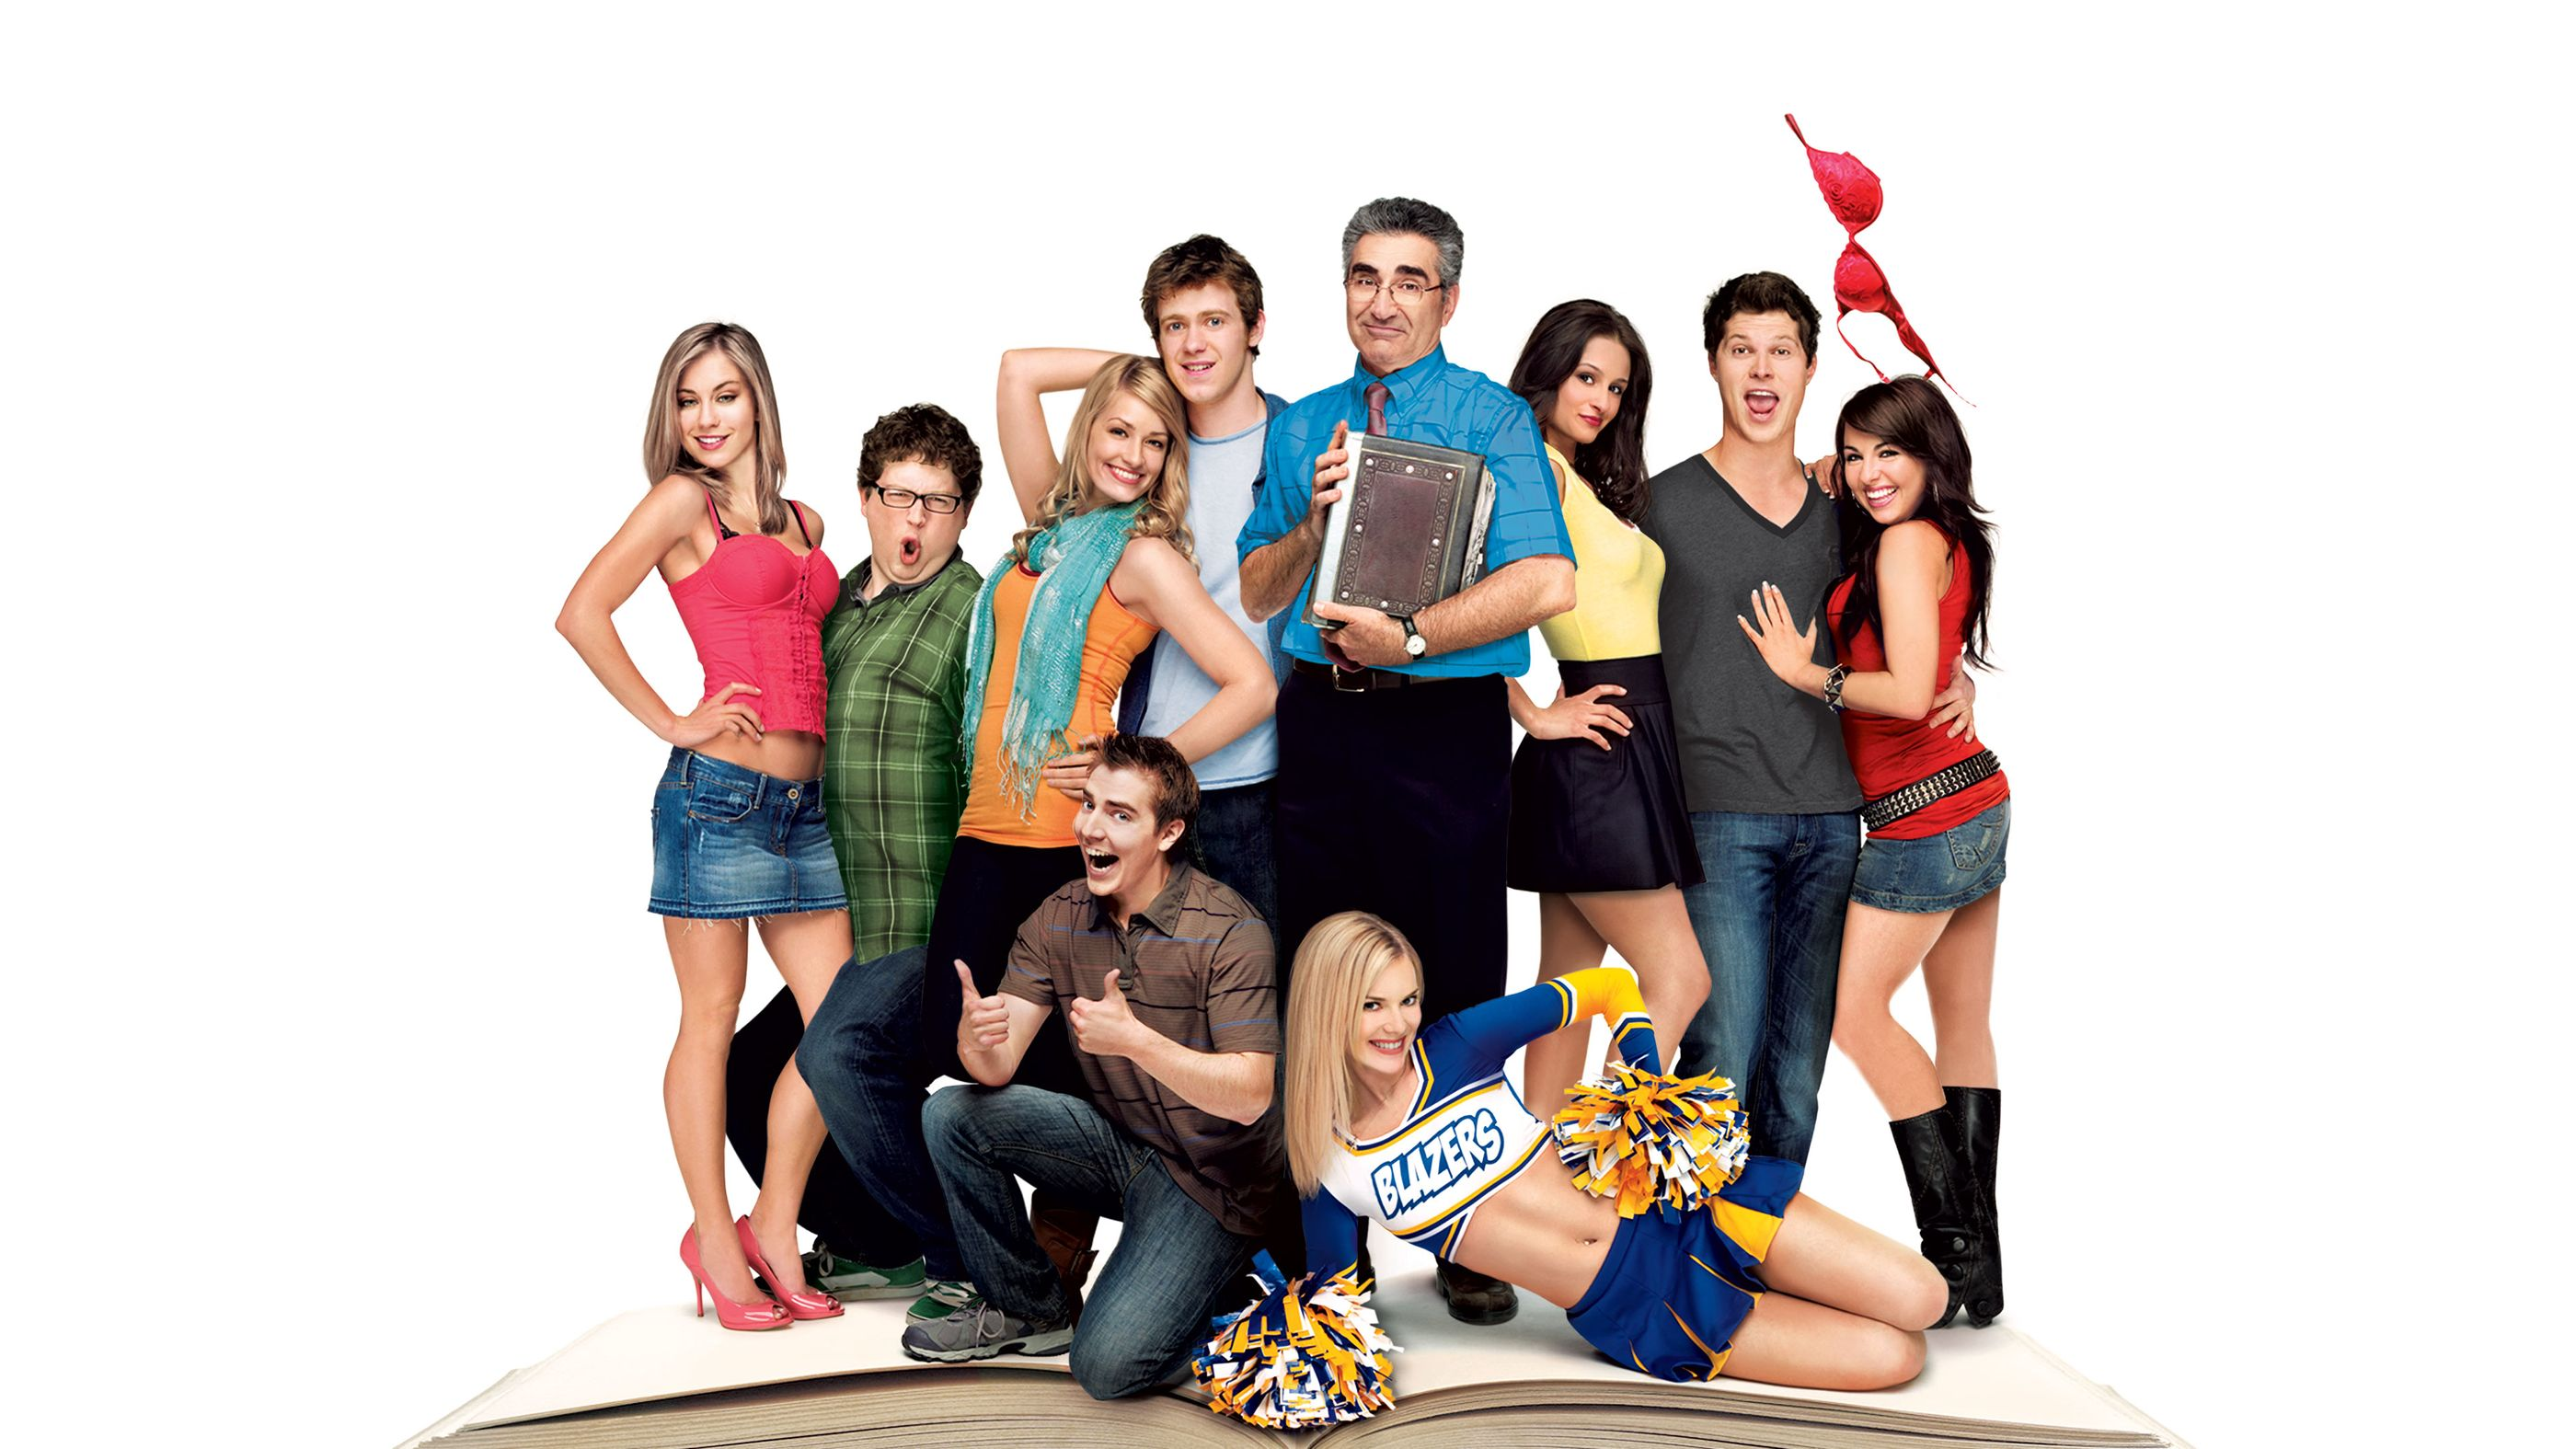 american pie the book of love watch online free